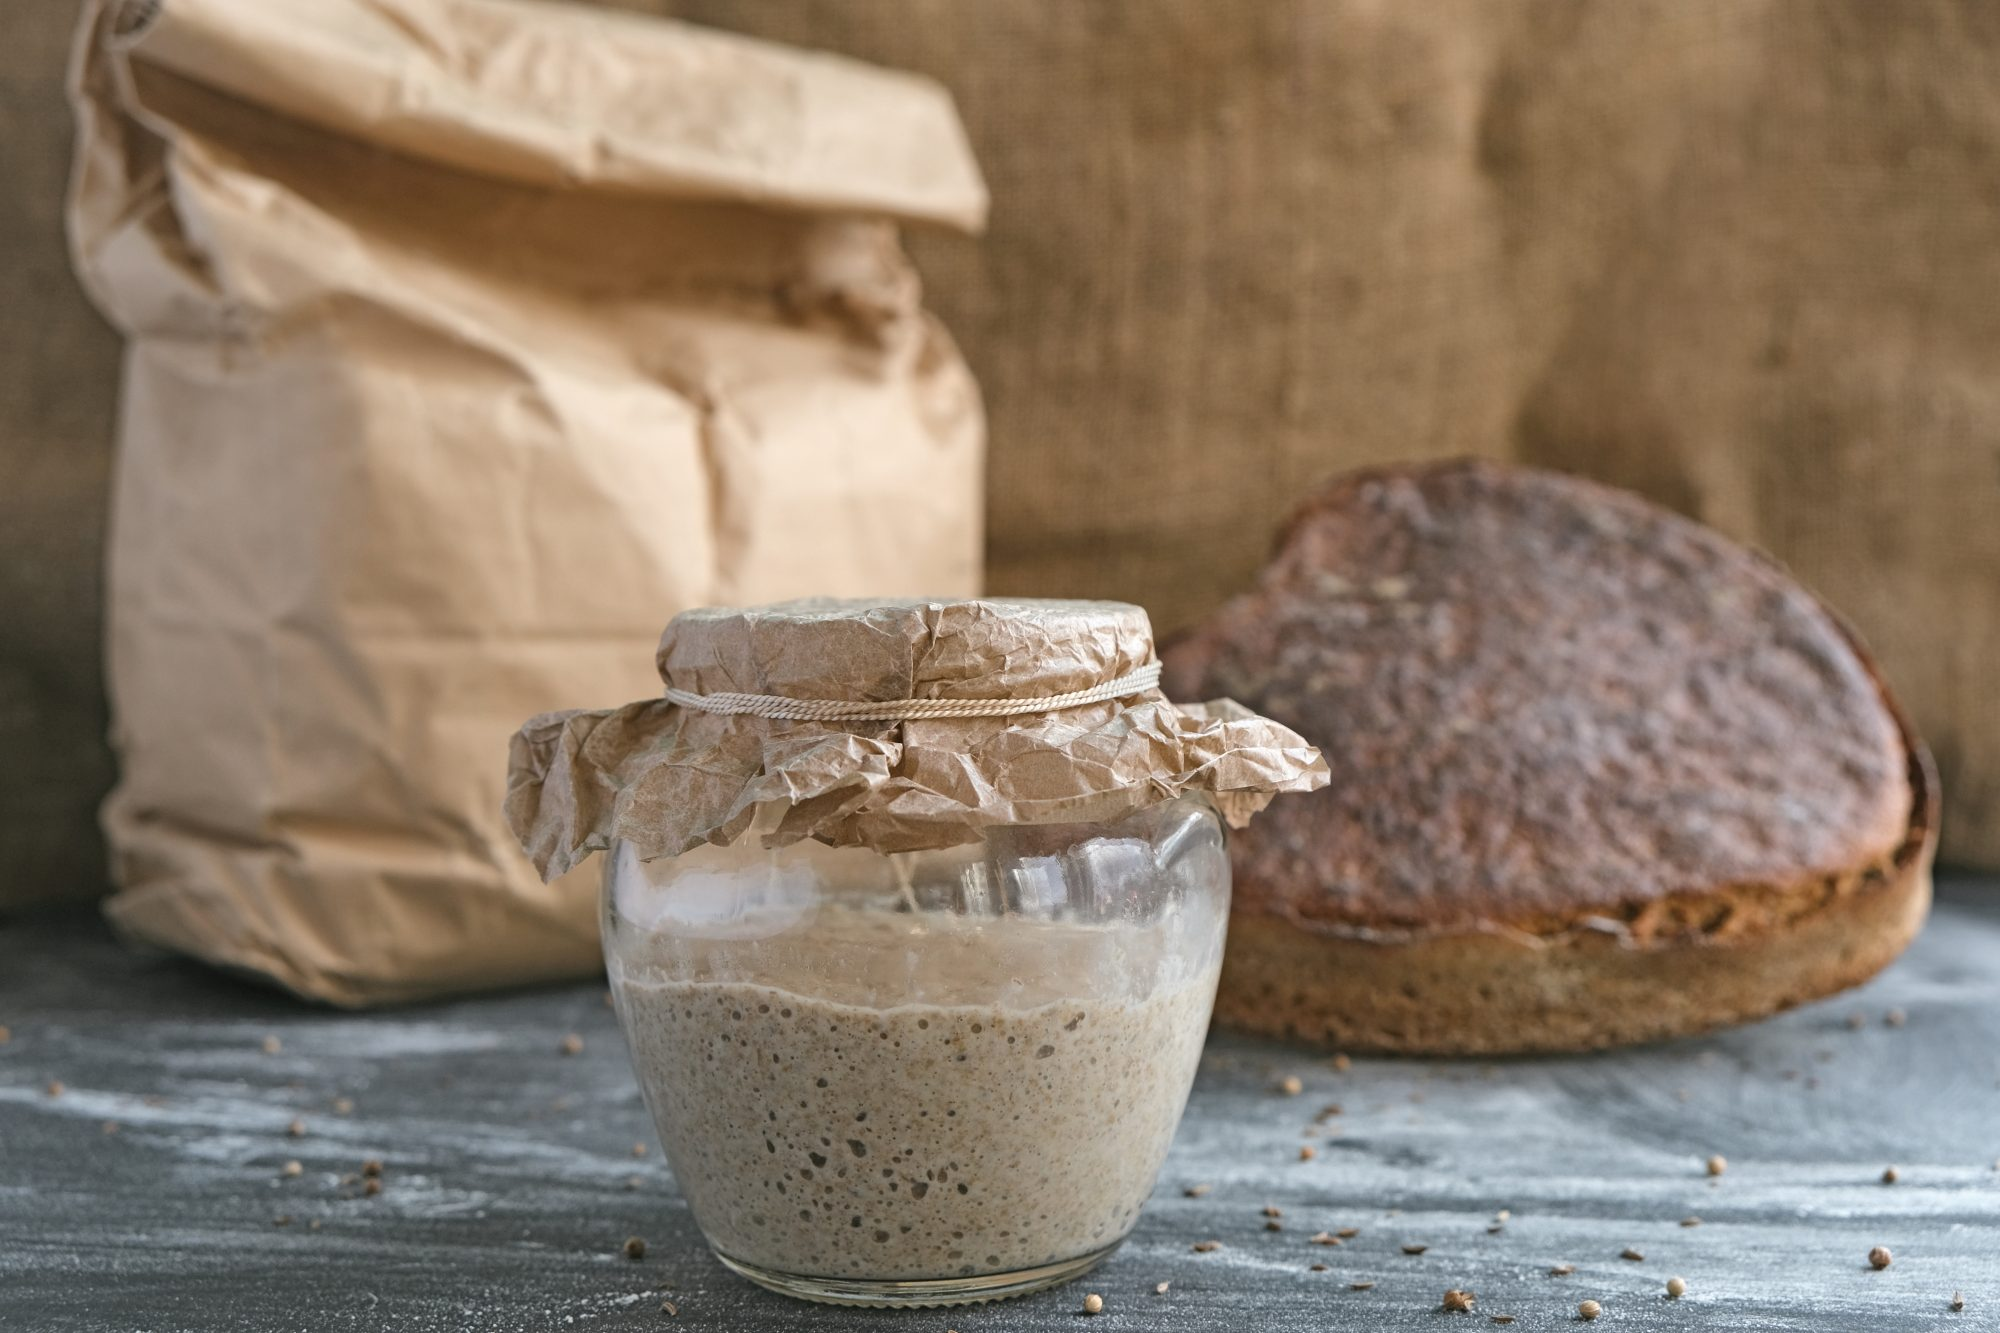 sourdough-starter-1219919001.jpg